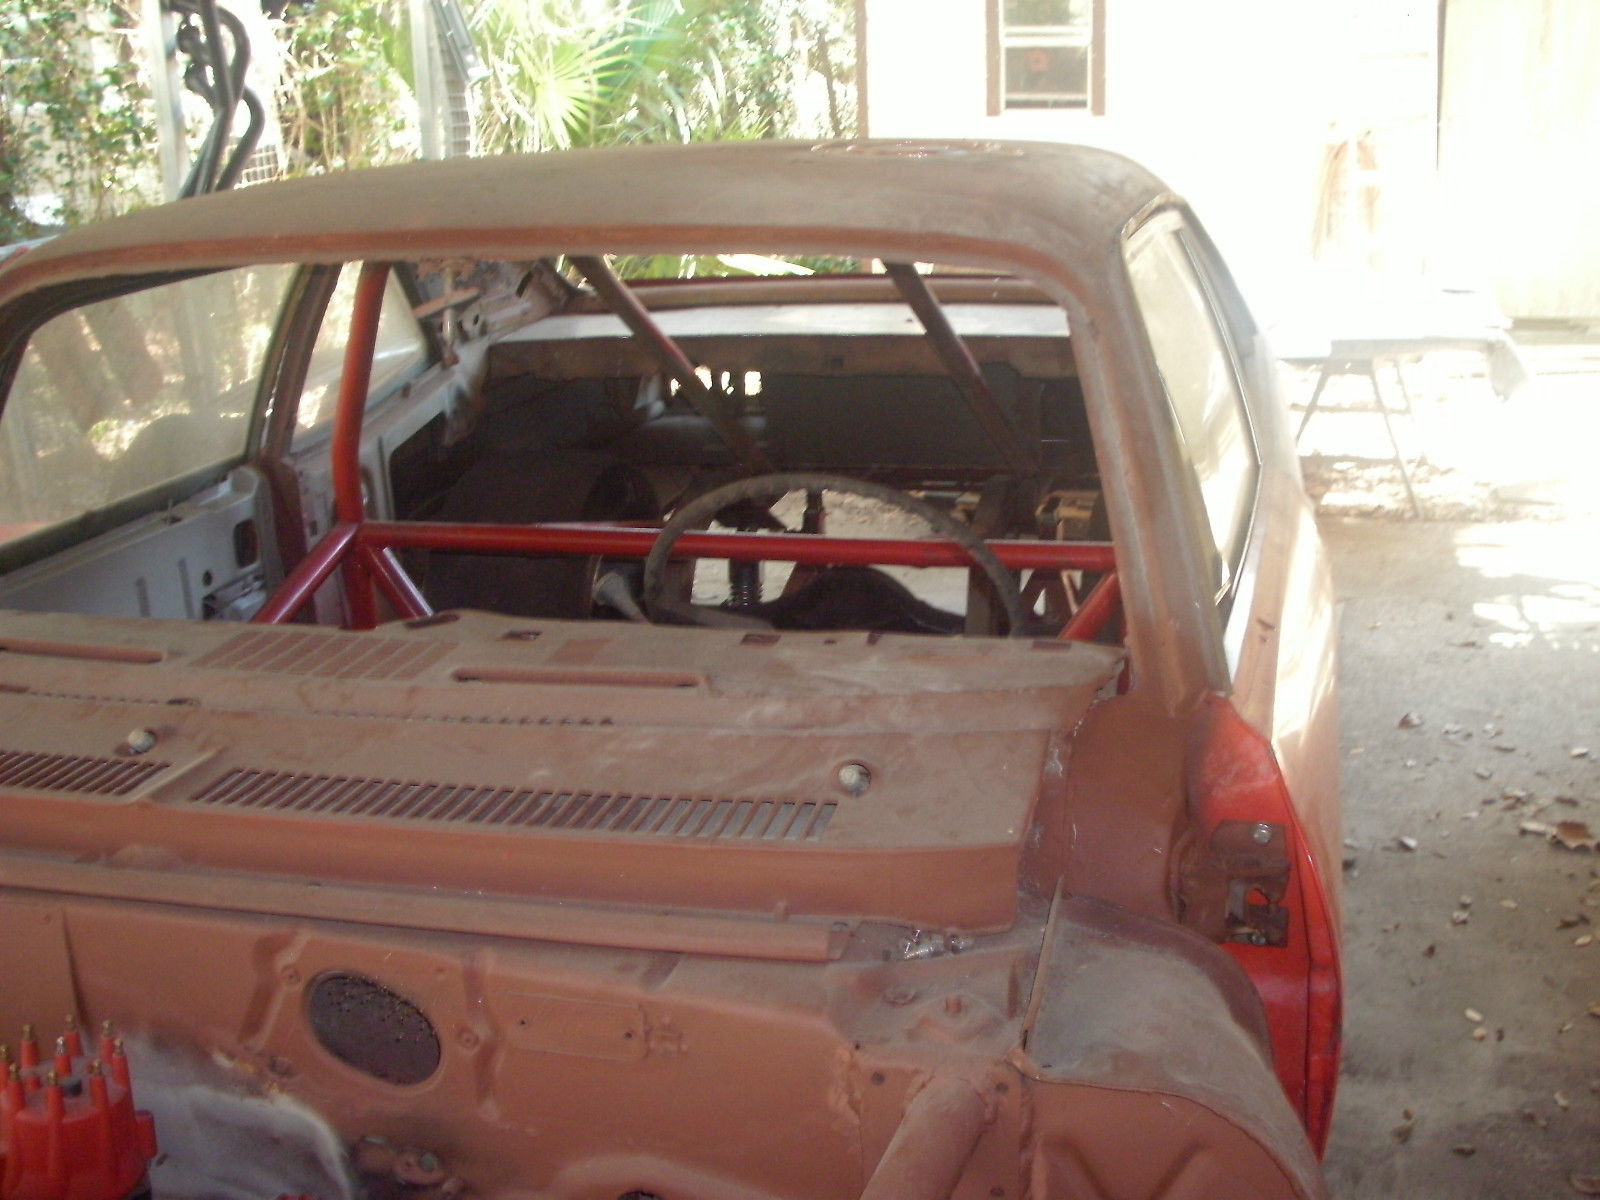 1969 chevy nova project race car with lots of extra parts for sale in belleview florida united. Black Bedroom Furniture Sets. Home Design Ideas